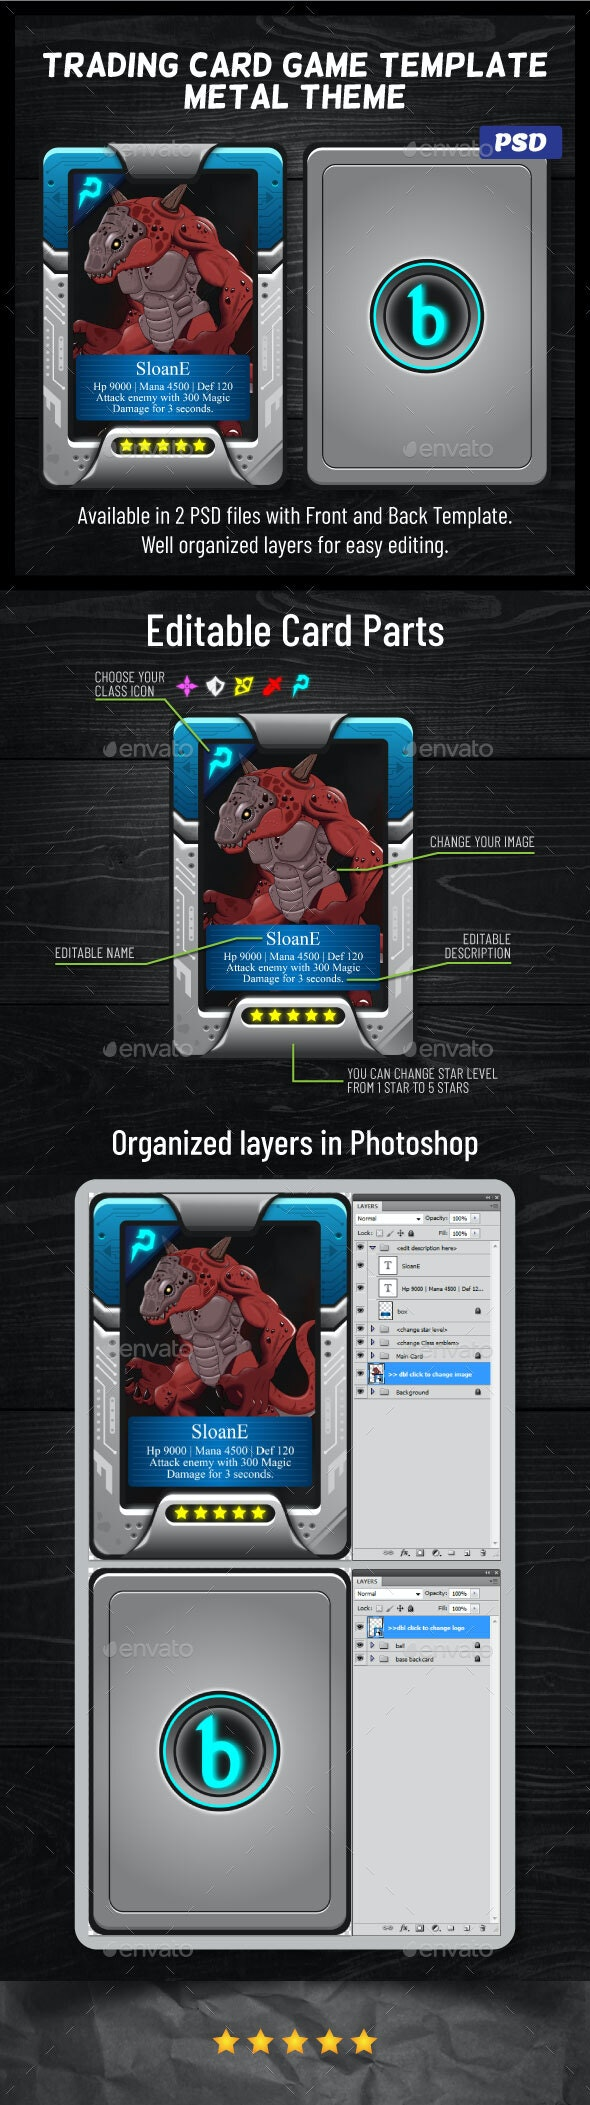 RPG Trading Card Game Template   Futuristic Metal Theme - User Interfaces Game Assets